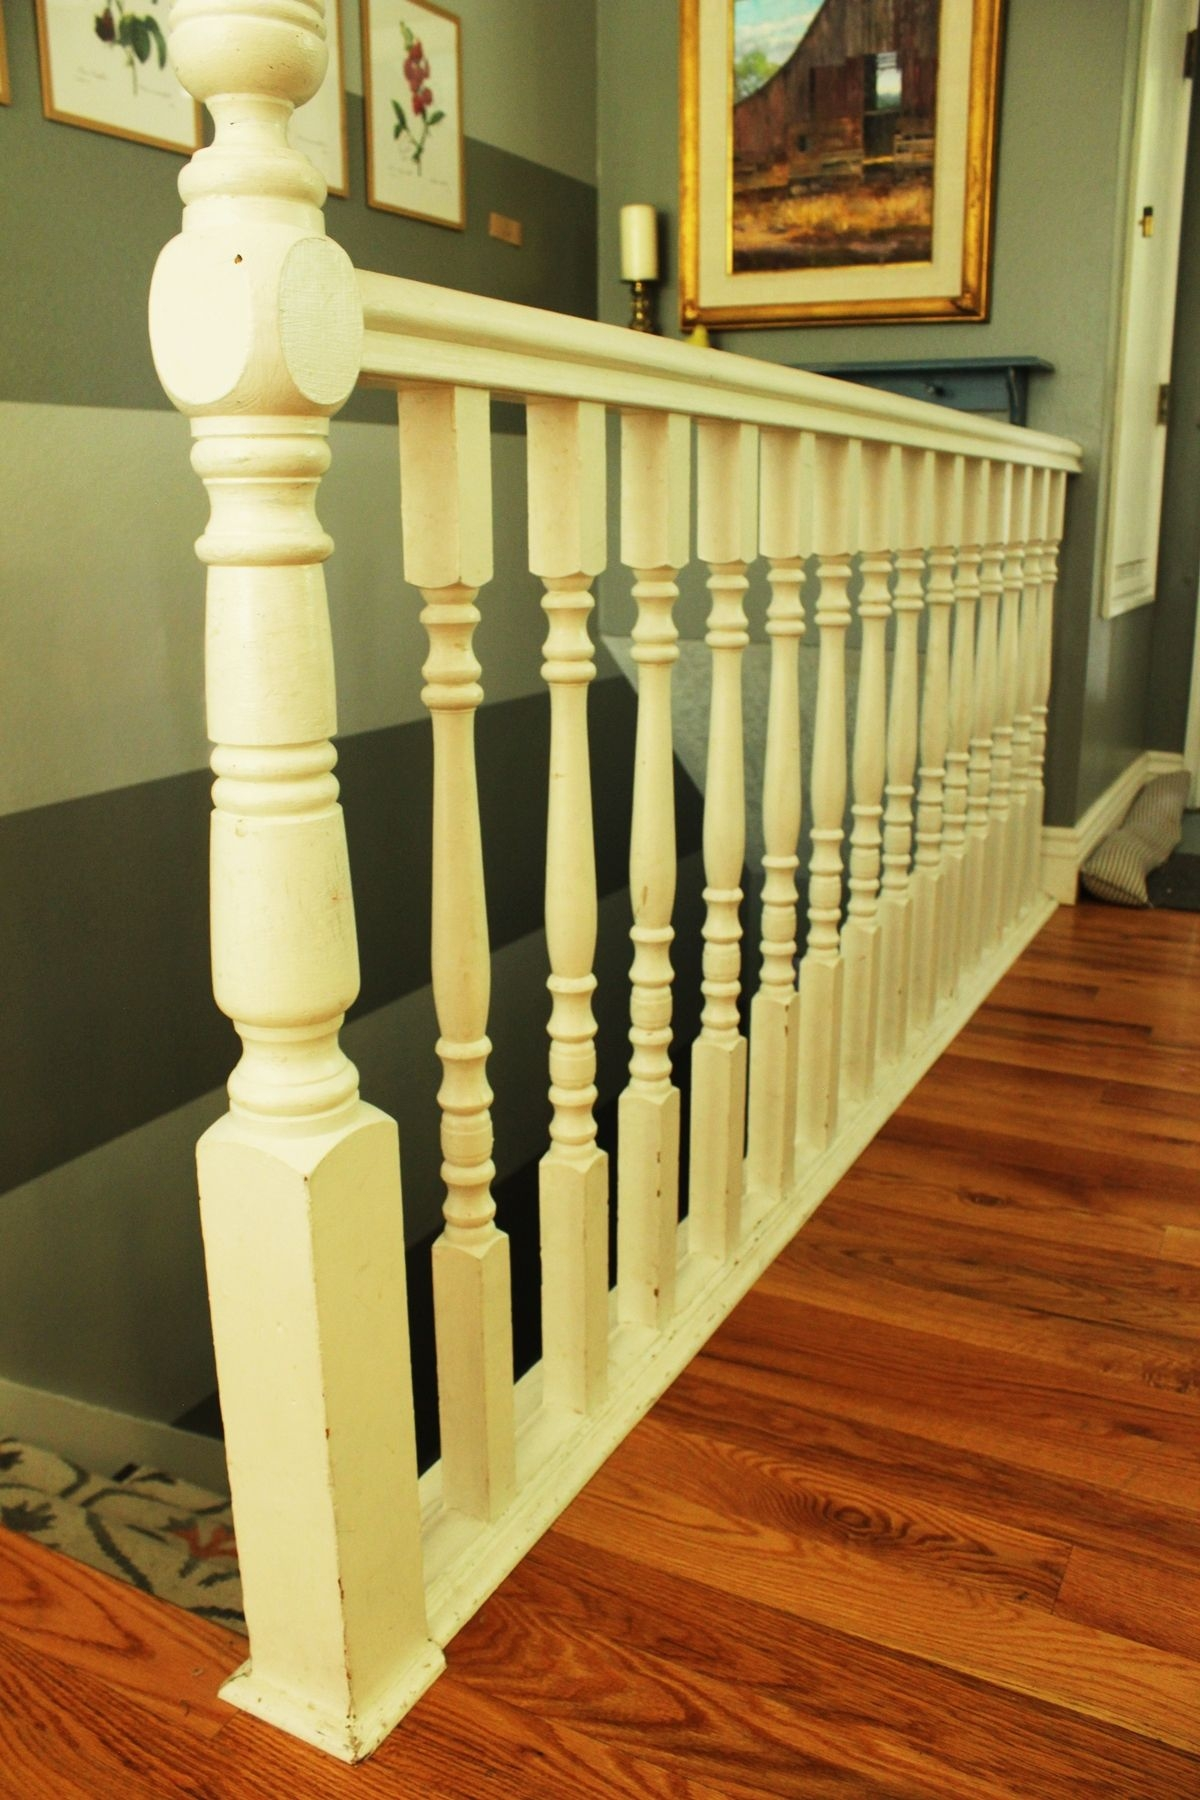 Diy Stair Handrail With Industrial Pipes And Wood | Diy Wood Stair Railing | Diy Unique | Cable | Cast Iron Pipe | Wood Frame | Easy